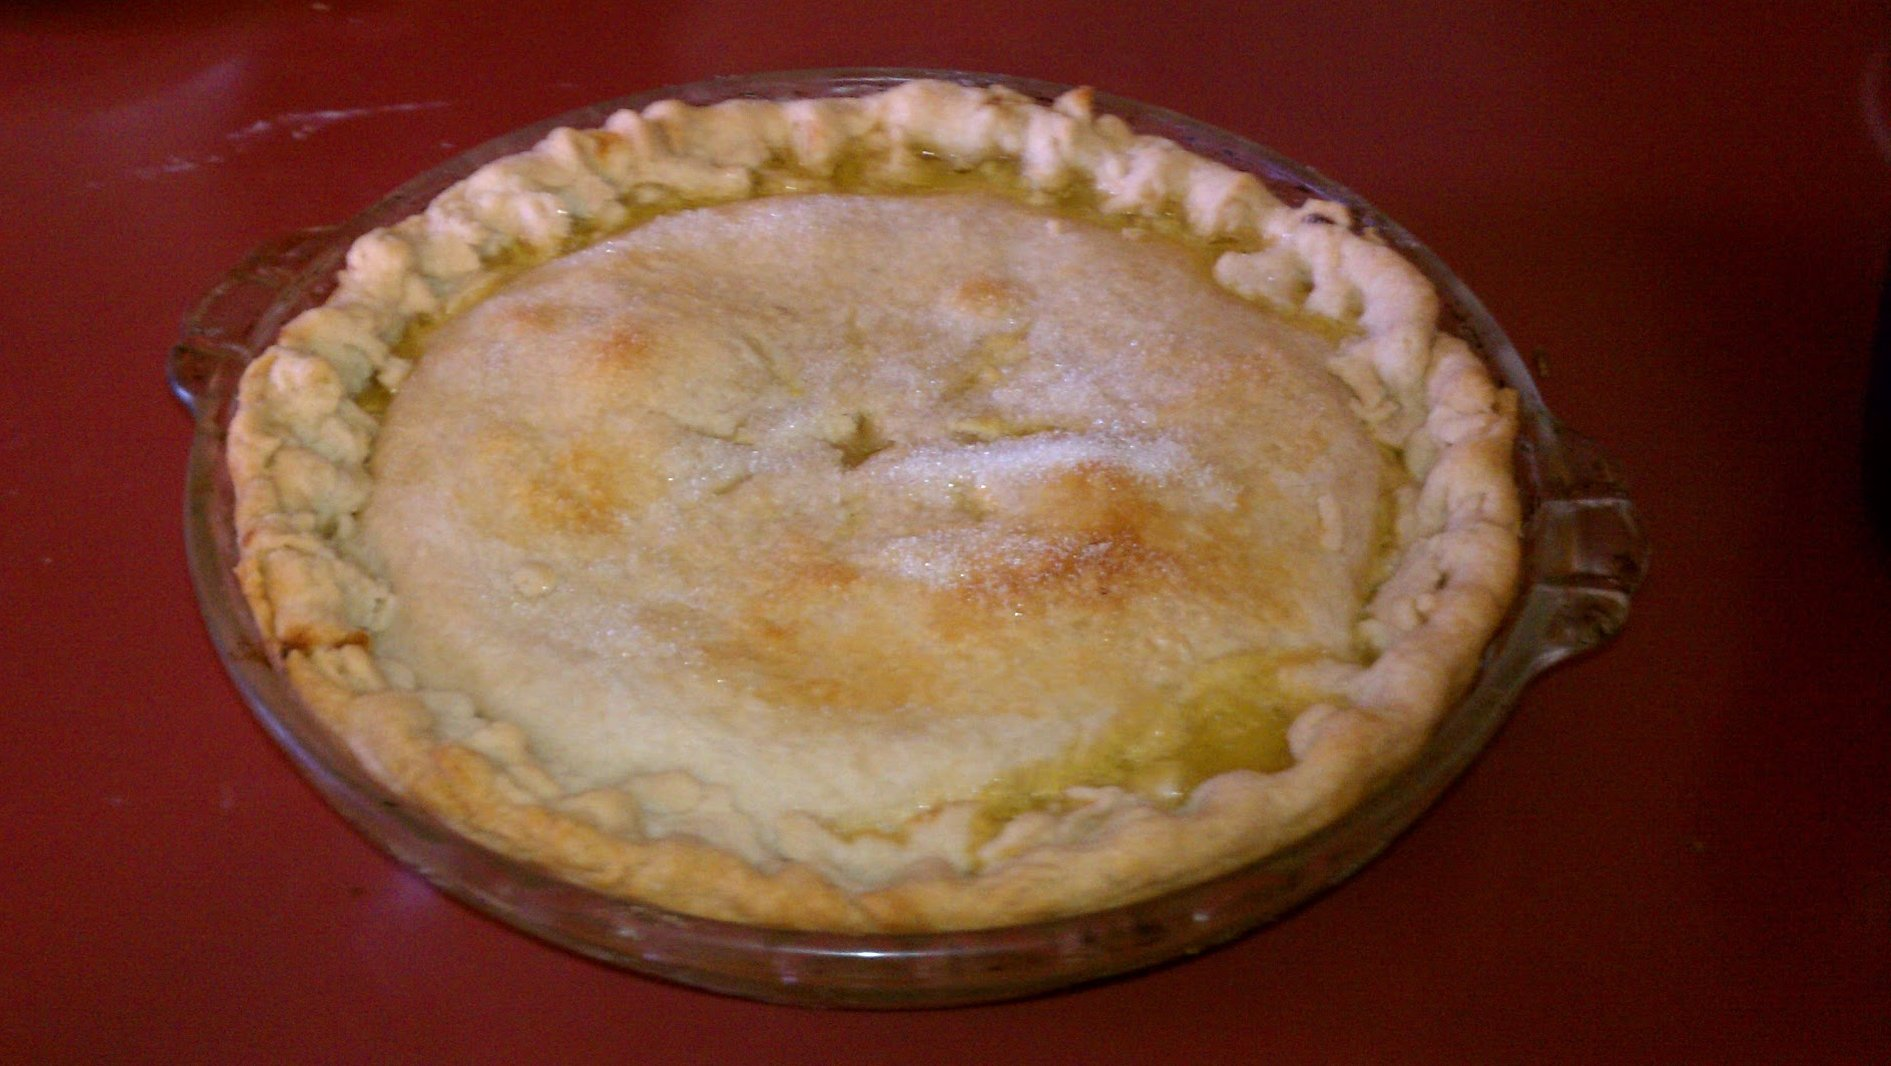 File:Shaker lemon pie.jpg - Wikimedia Commons